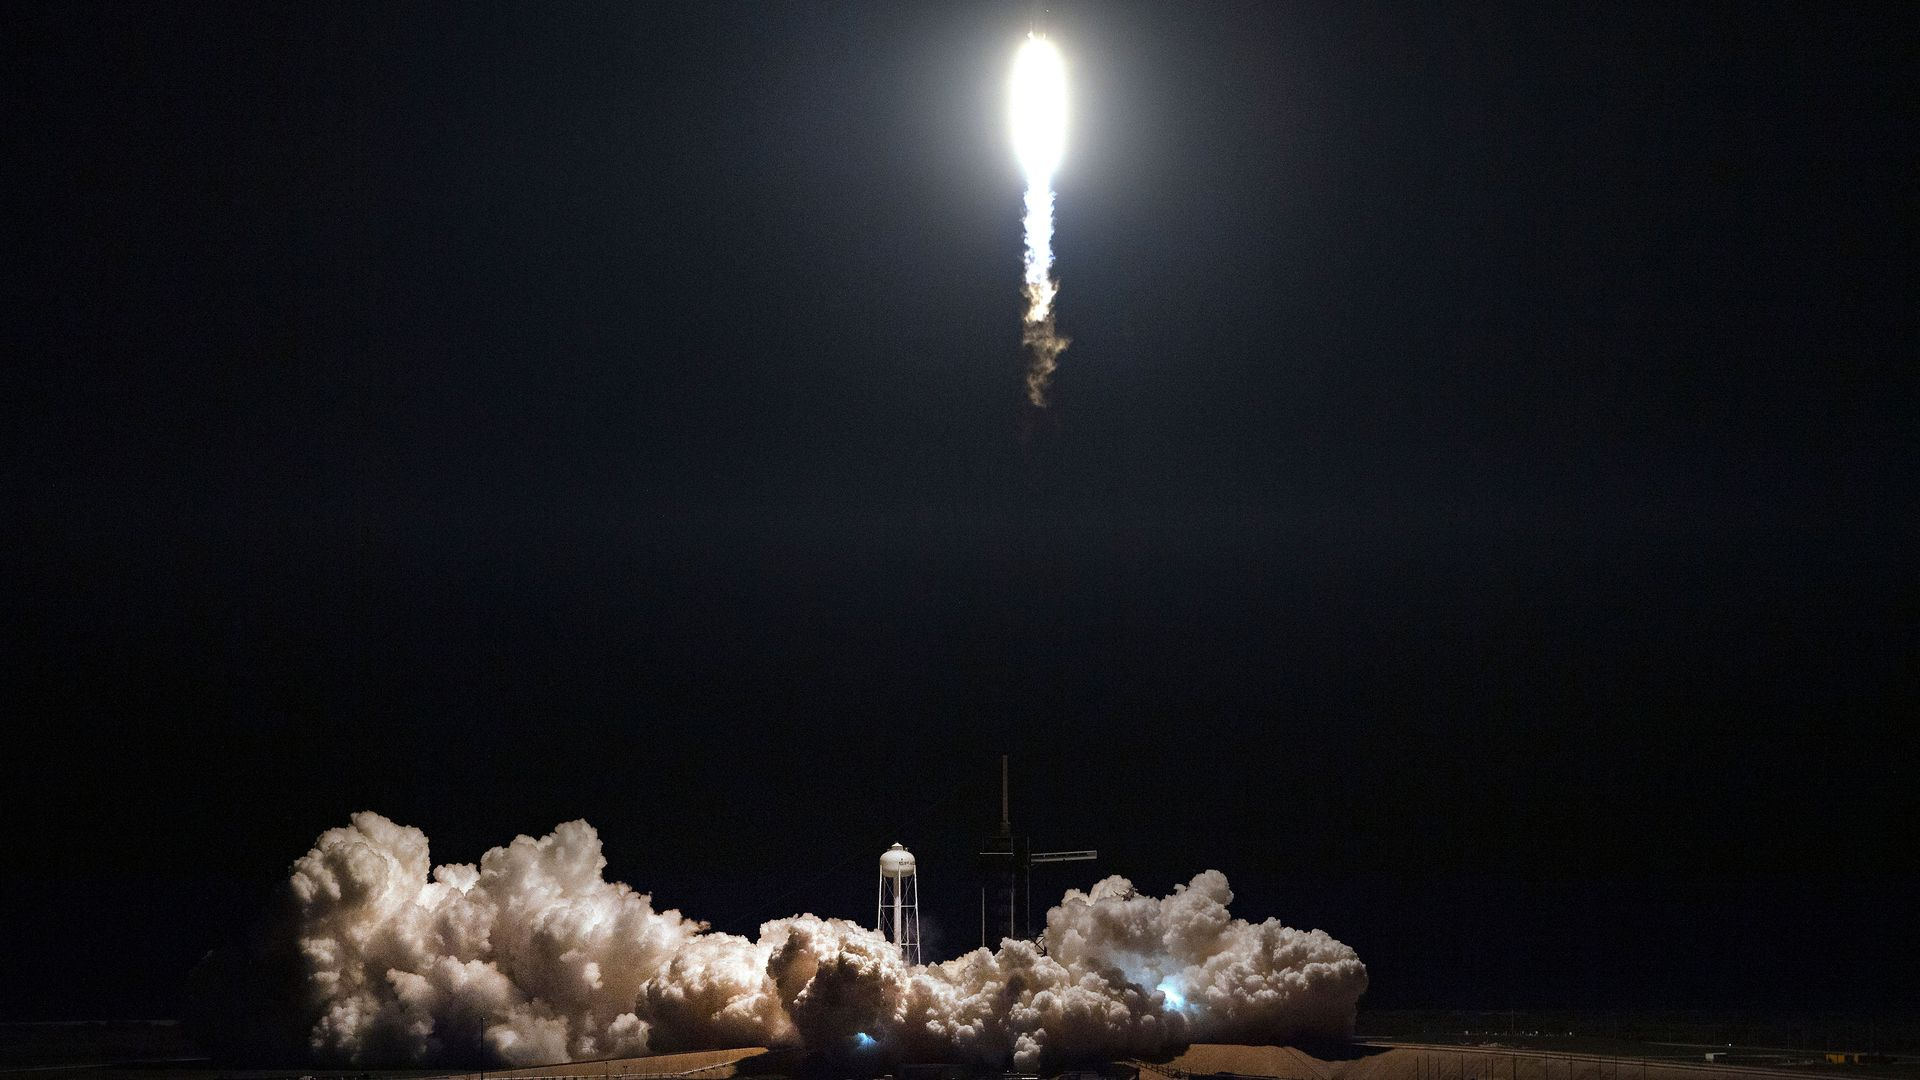 SpaceX Falcon 9 rocket with the company's Crew Dragon spacecraft onboard takes off during the Demo-1 mission, at the Kennedy Space Center in Florida